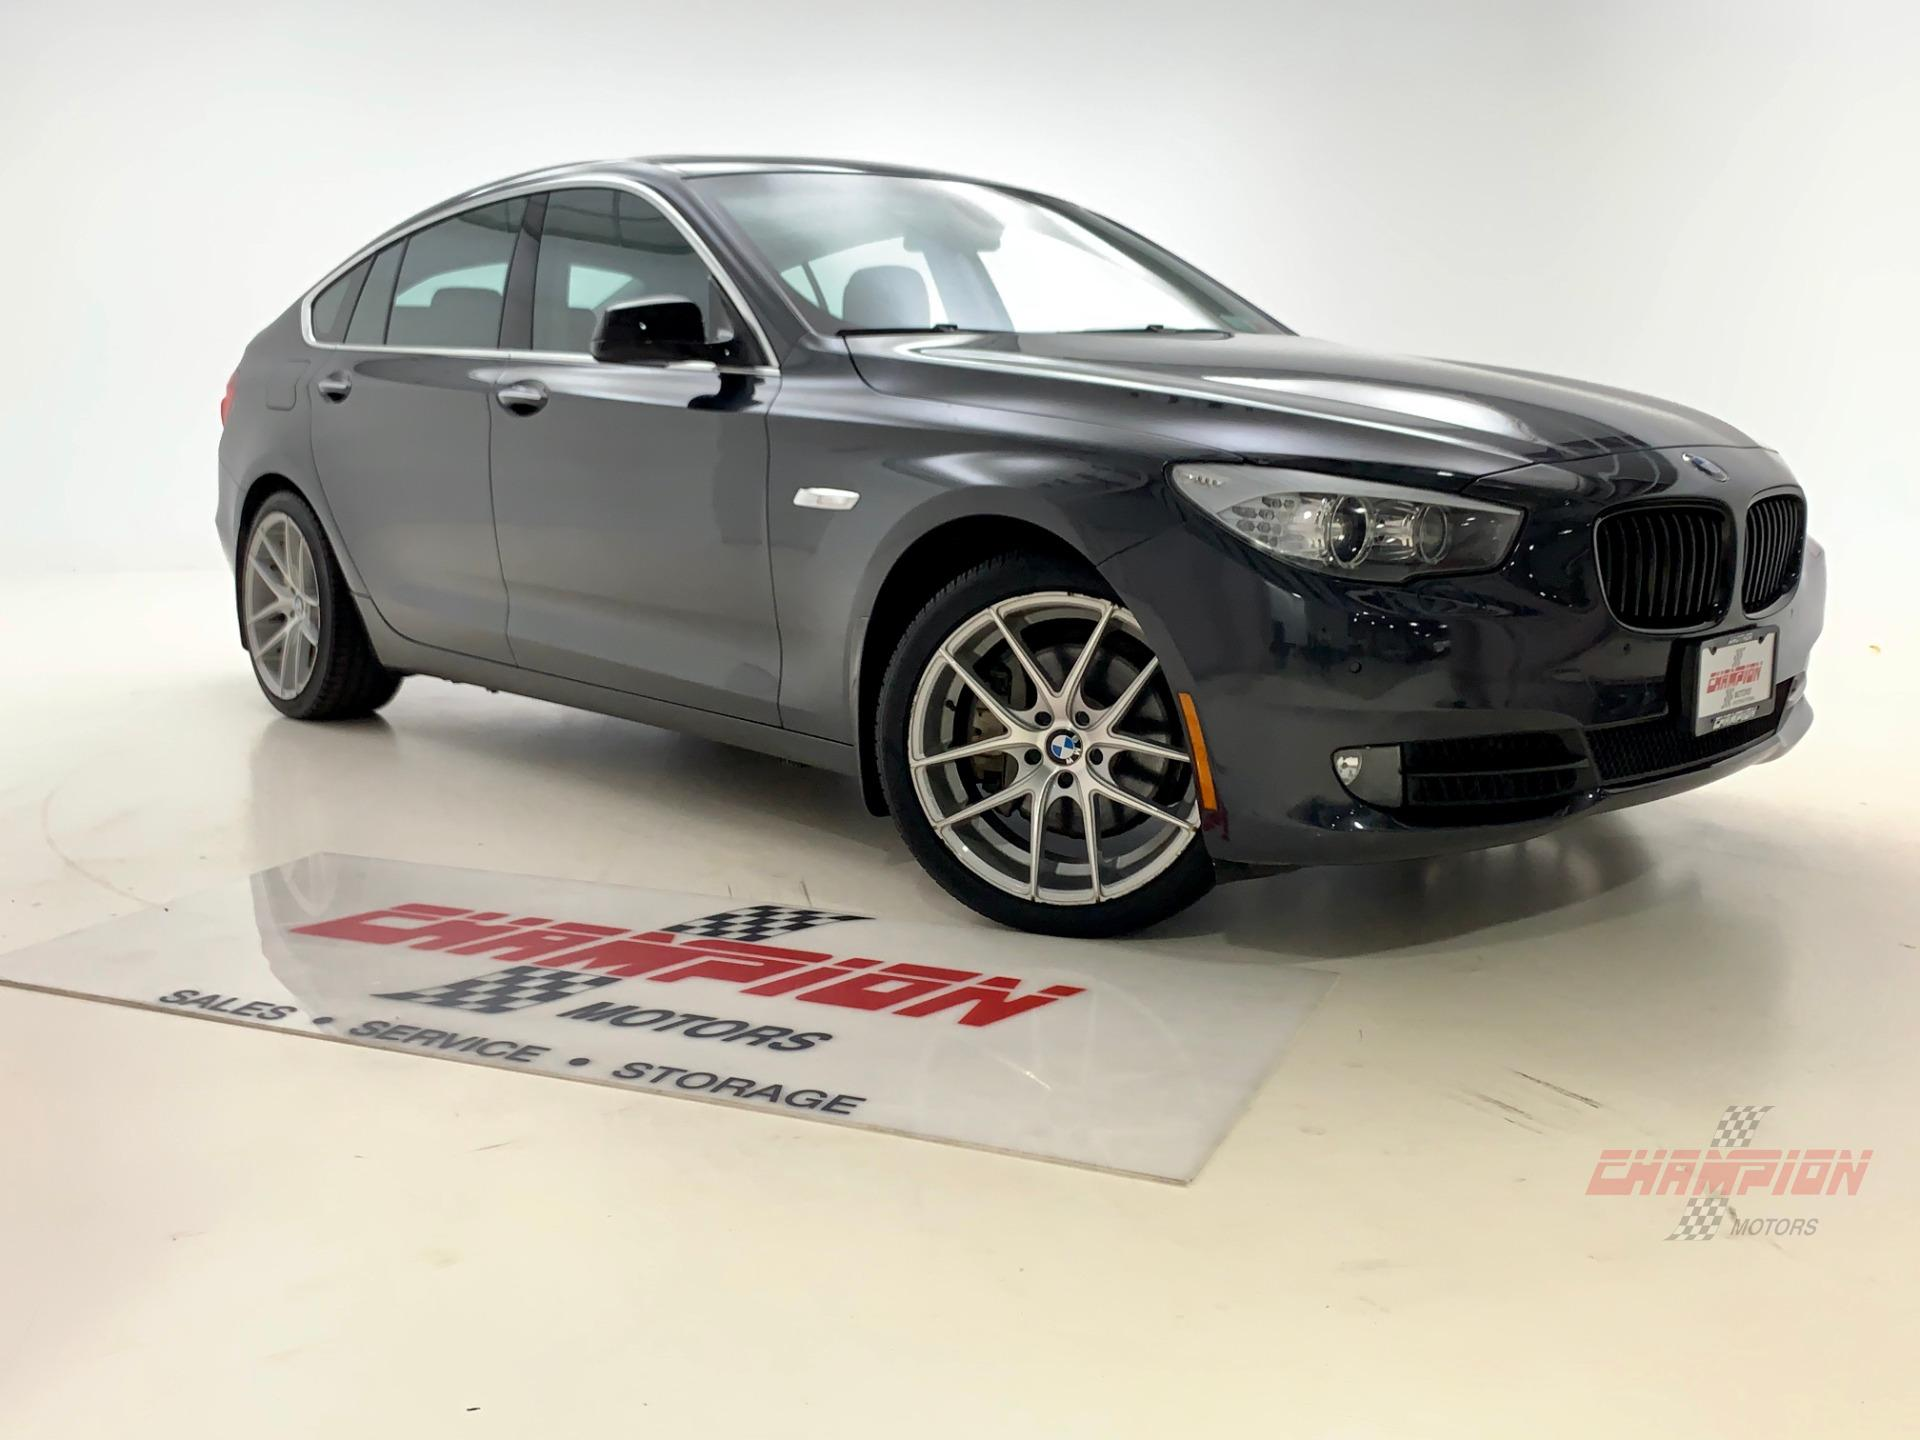 2011 Bmw 5 Series 535i Xdrive Gran Turismo Exotic And